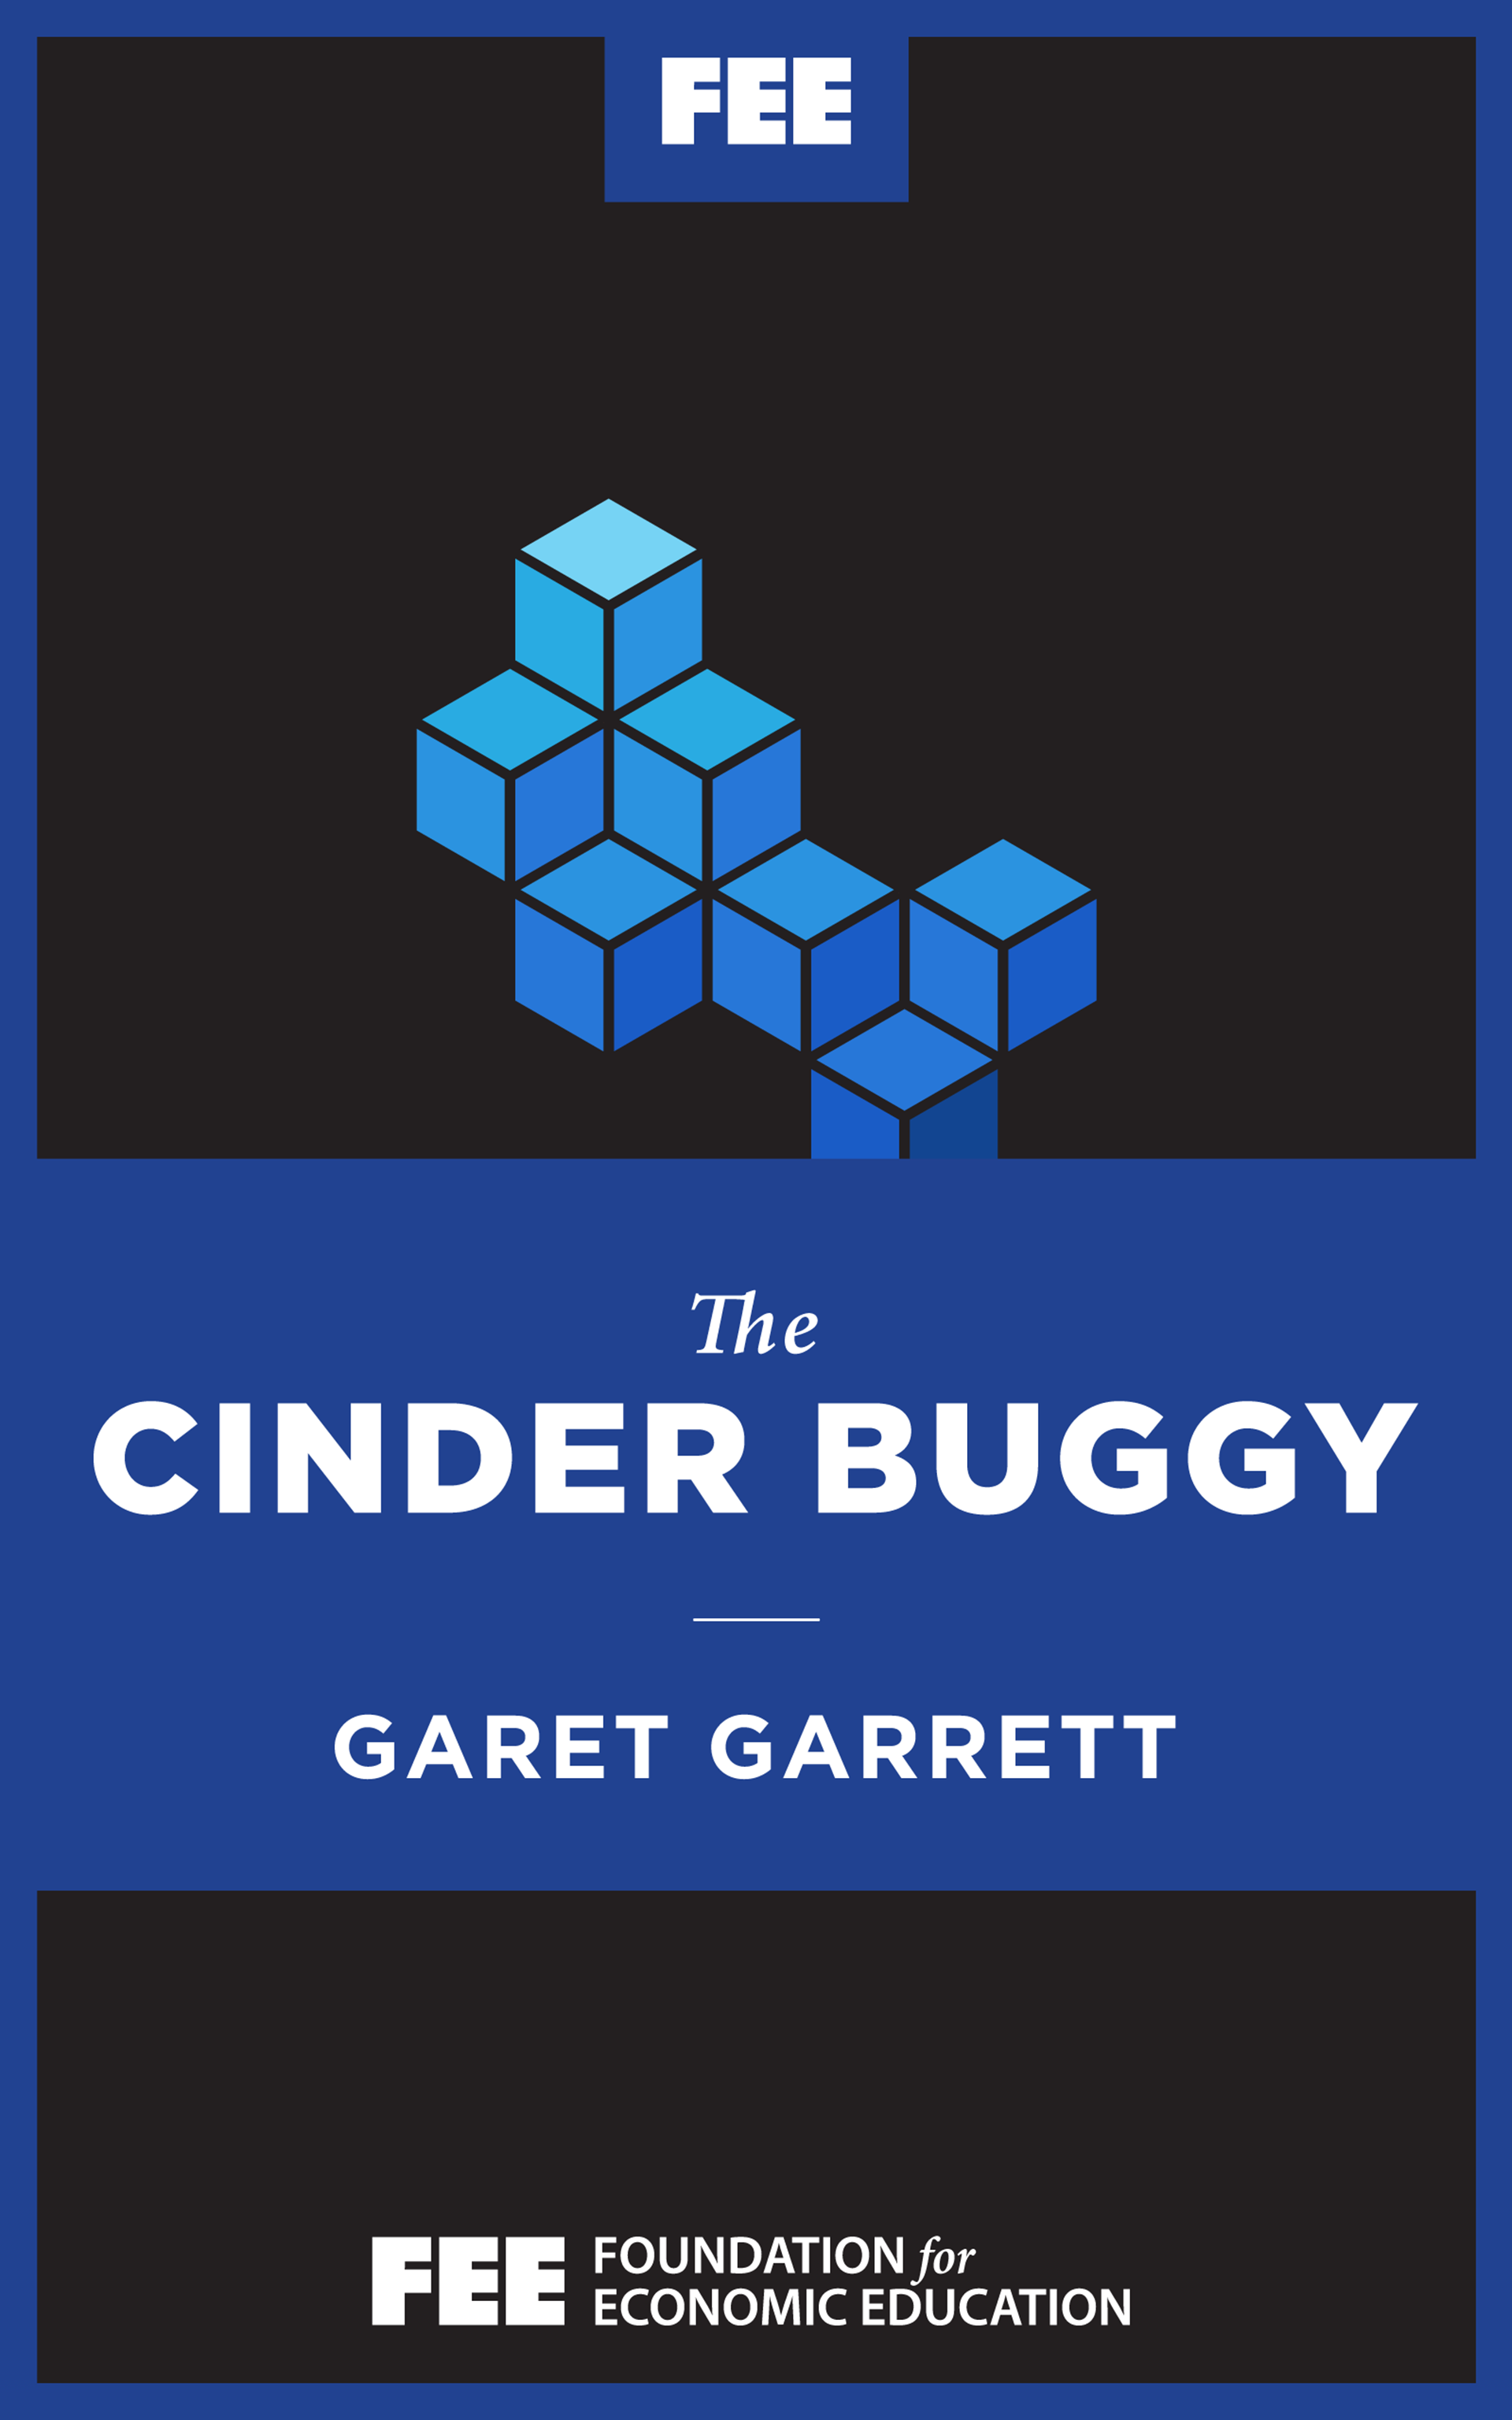 The Cinder Buggy - Foundation for Economic Education